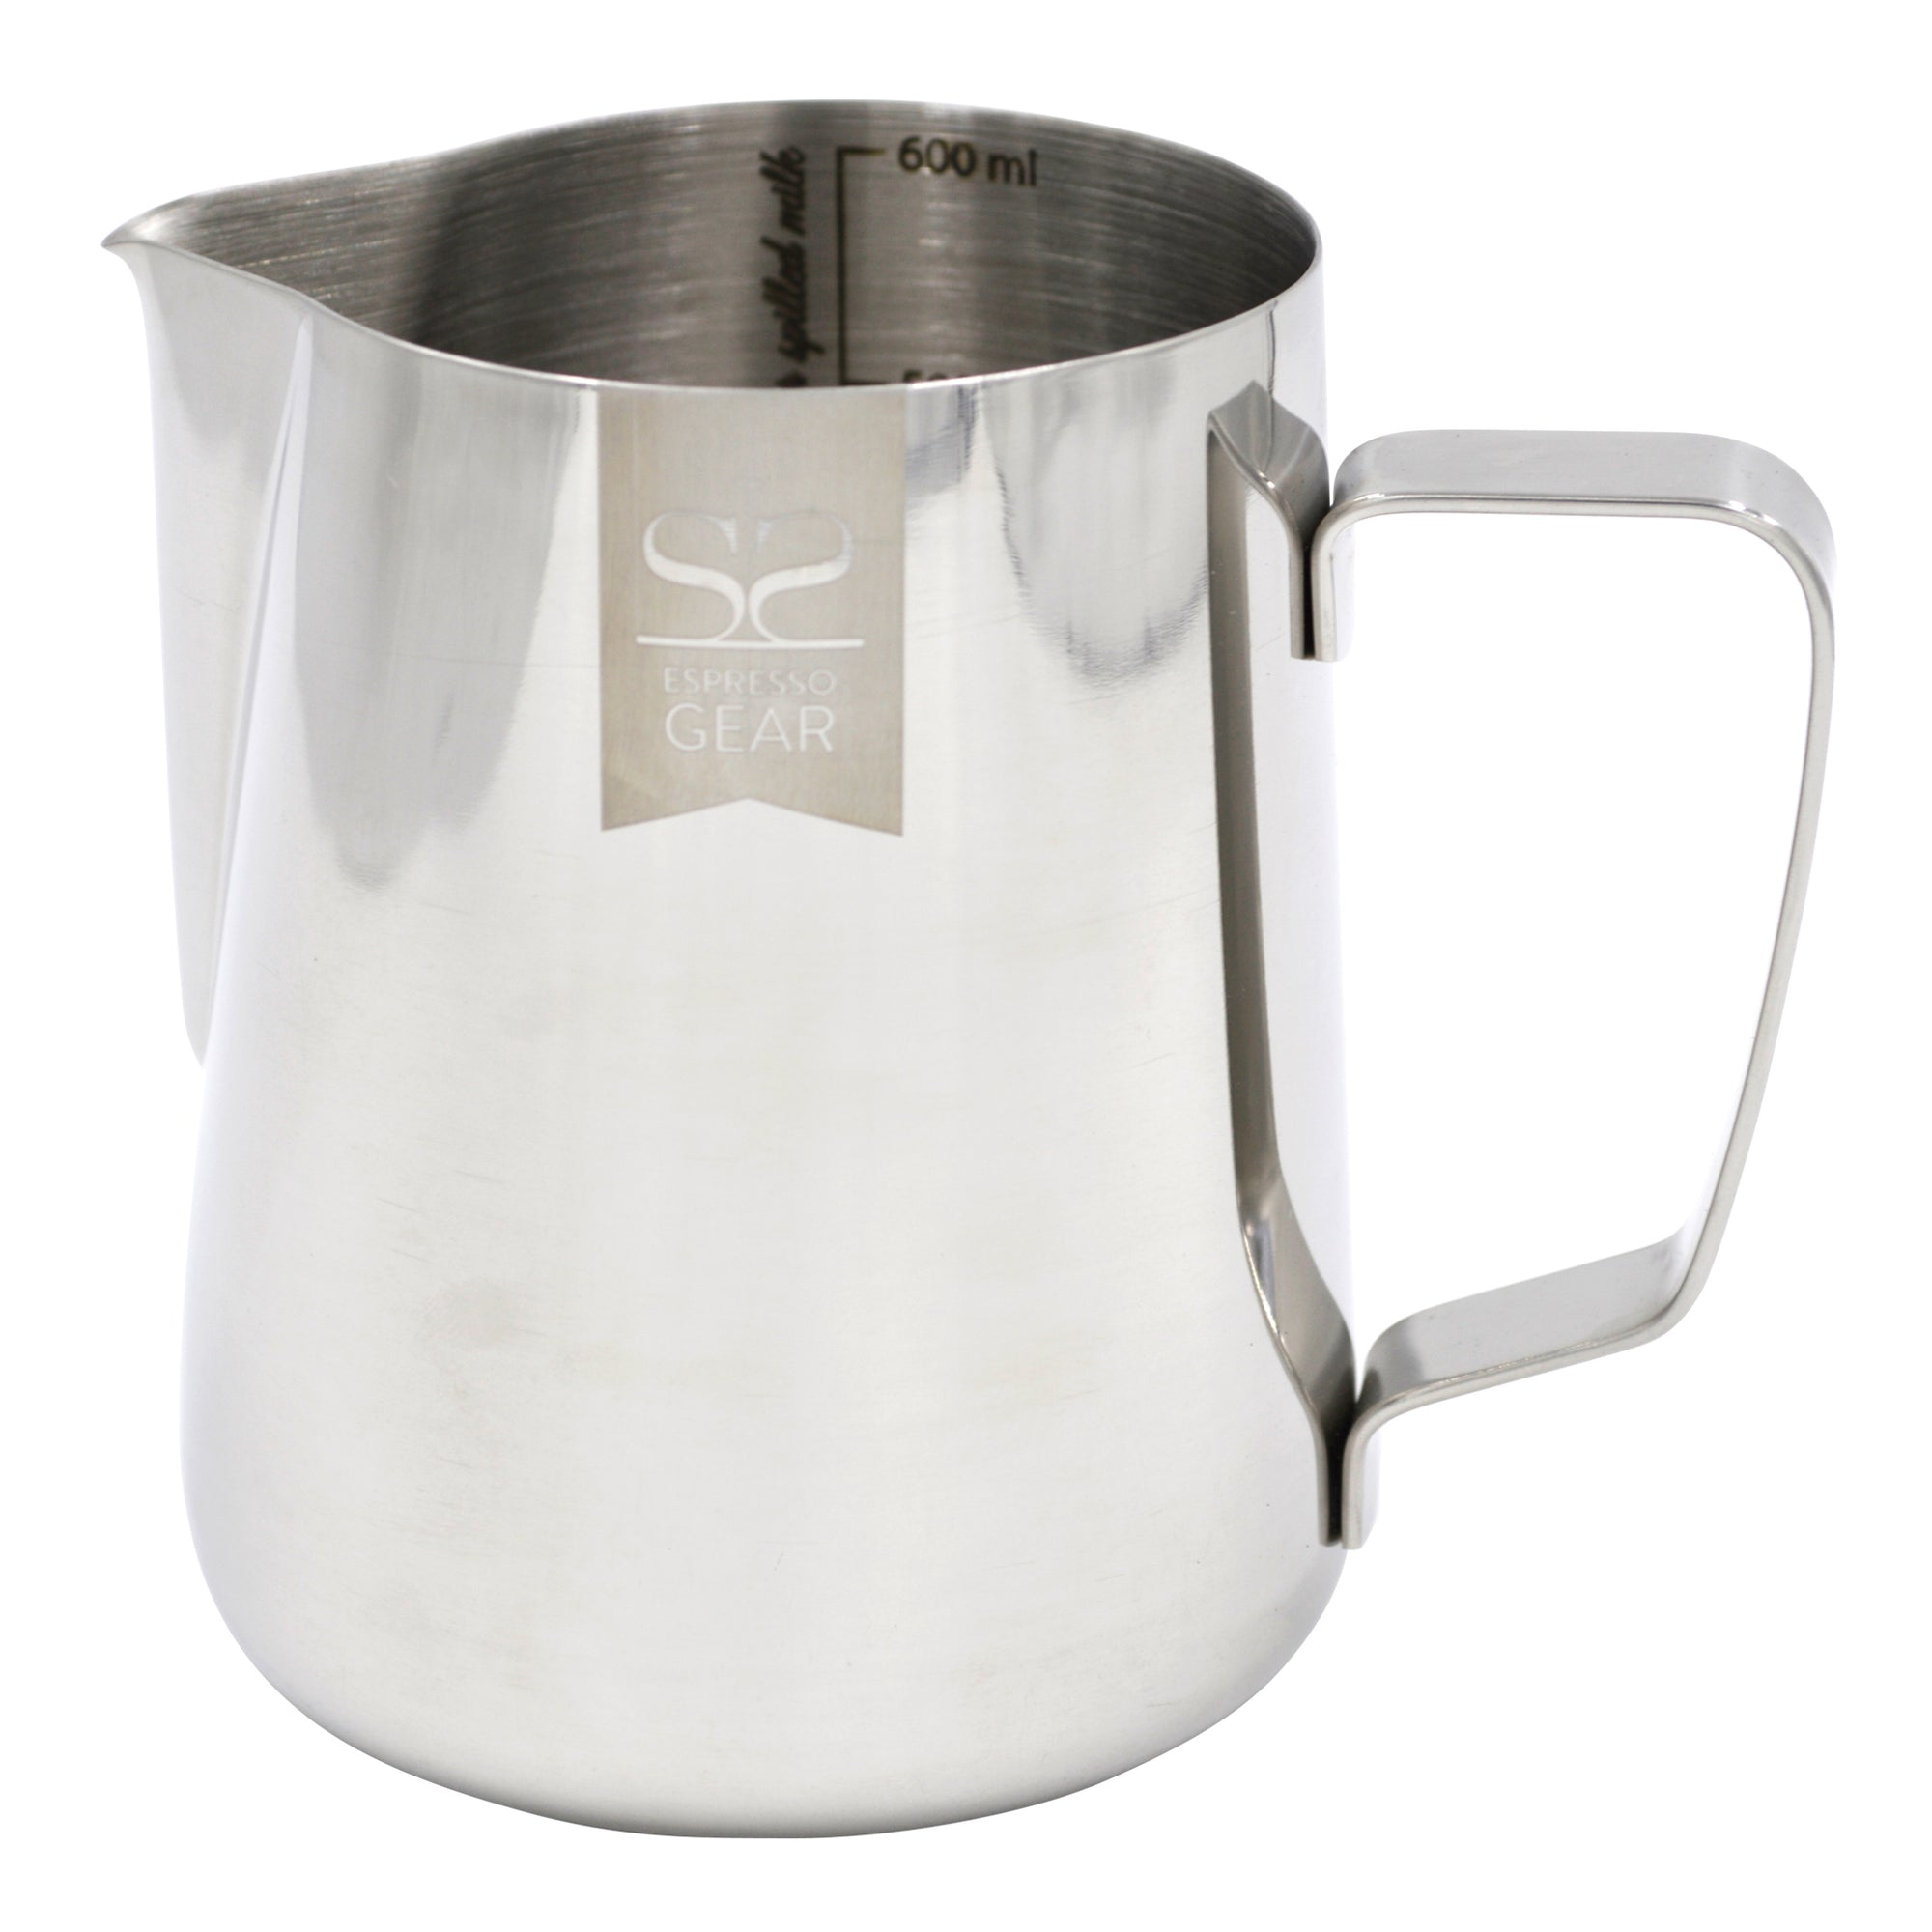 Espresso Gear Stainless Steel Pitcher 900ml - Espresso Gear